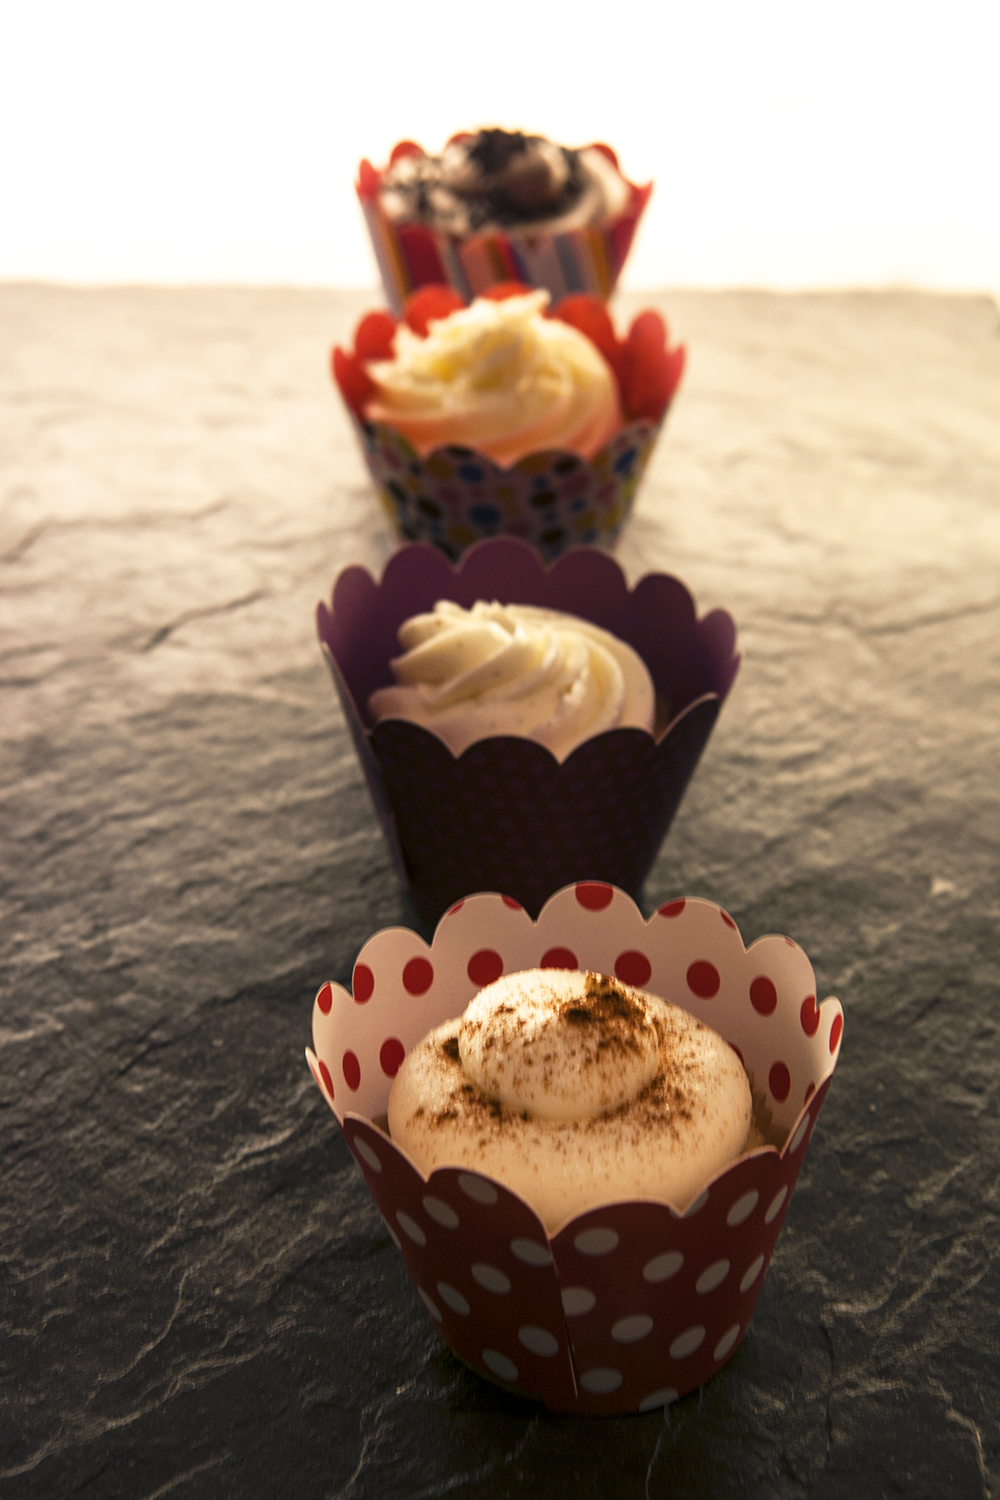 Housemade cupcakes